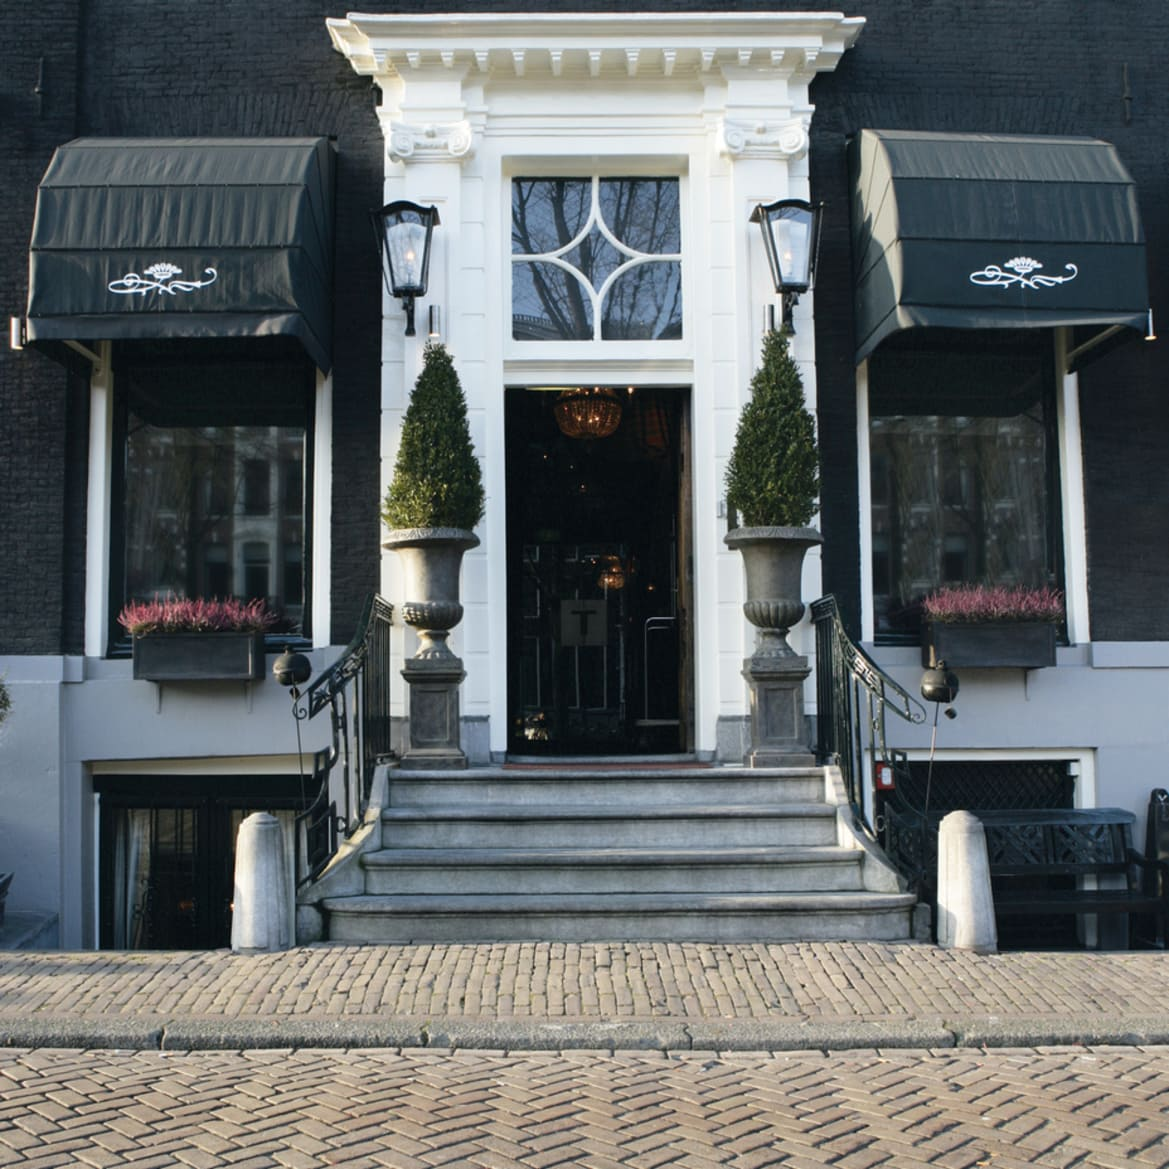 Hotel Main Entrance - The Toren Amsterdam - By the Pavilions